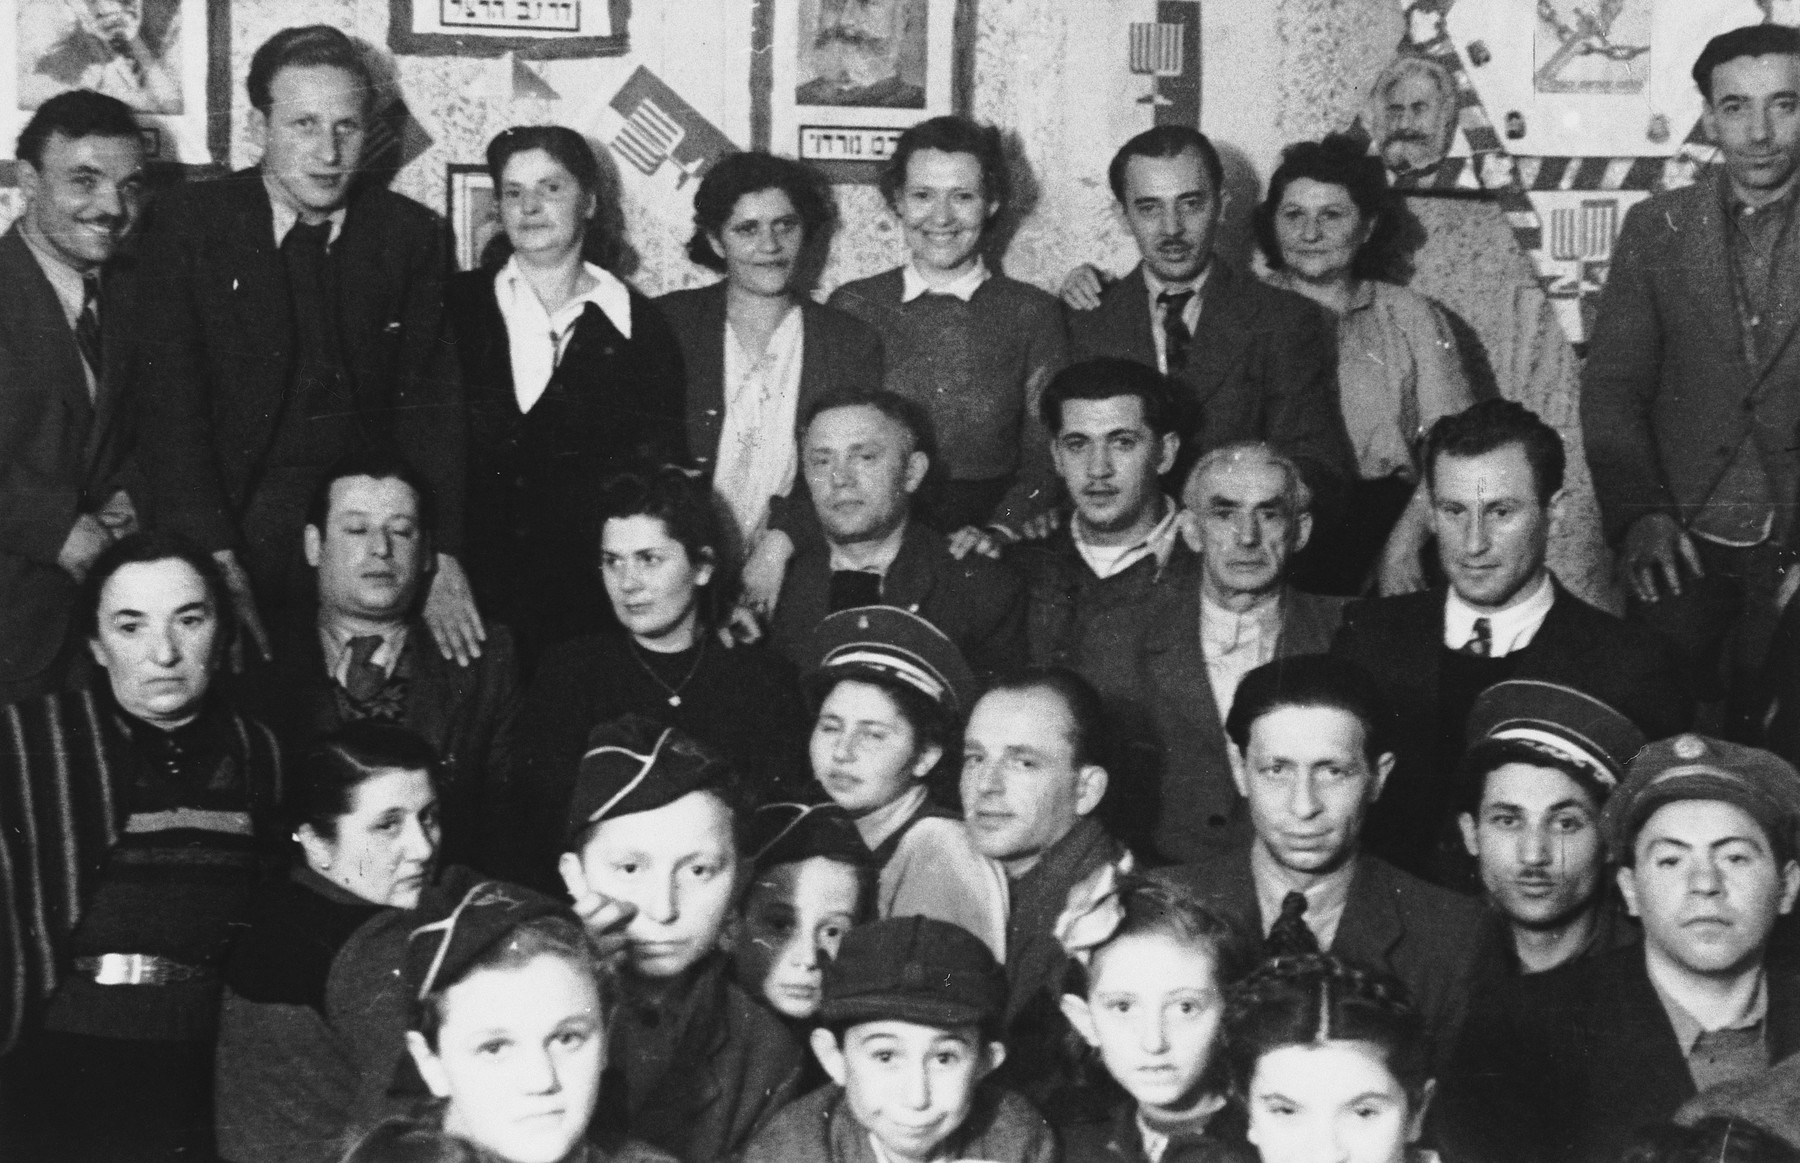 Gathering of the Betar Zionist youth in the Foehrenwald DP camp.